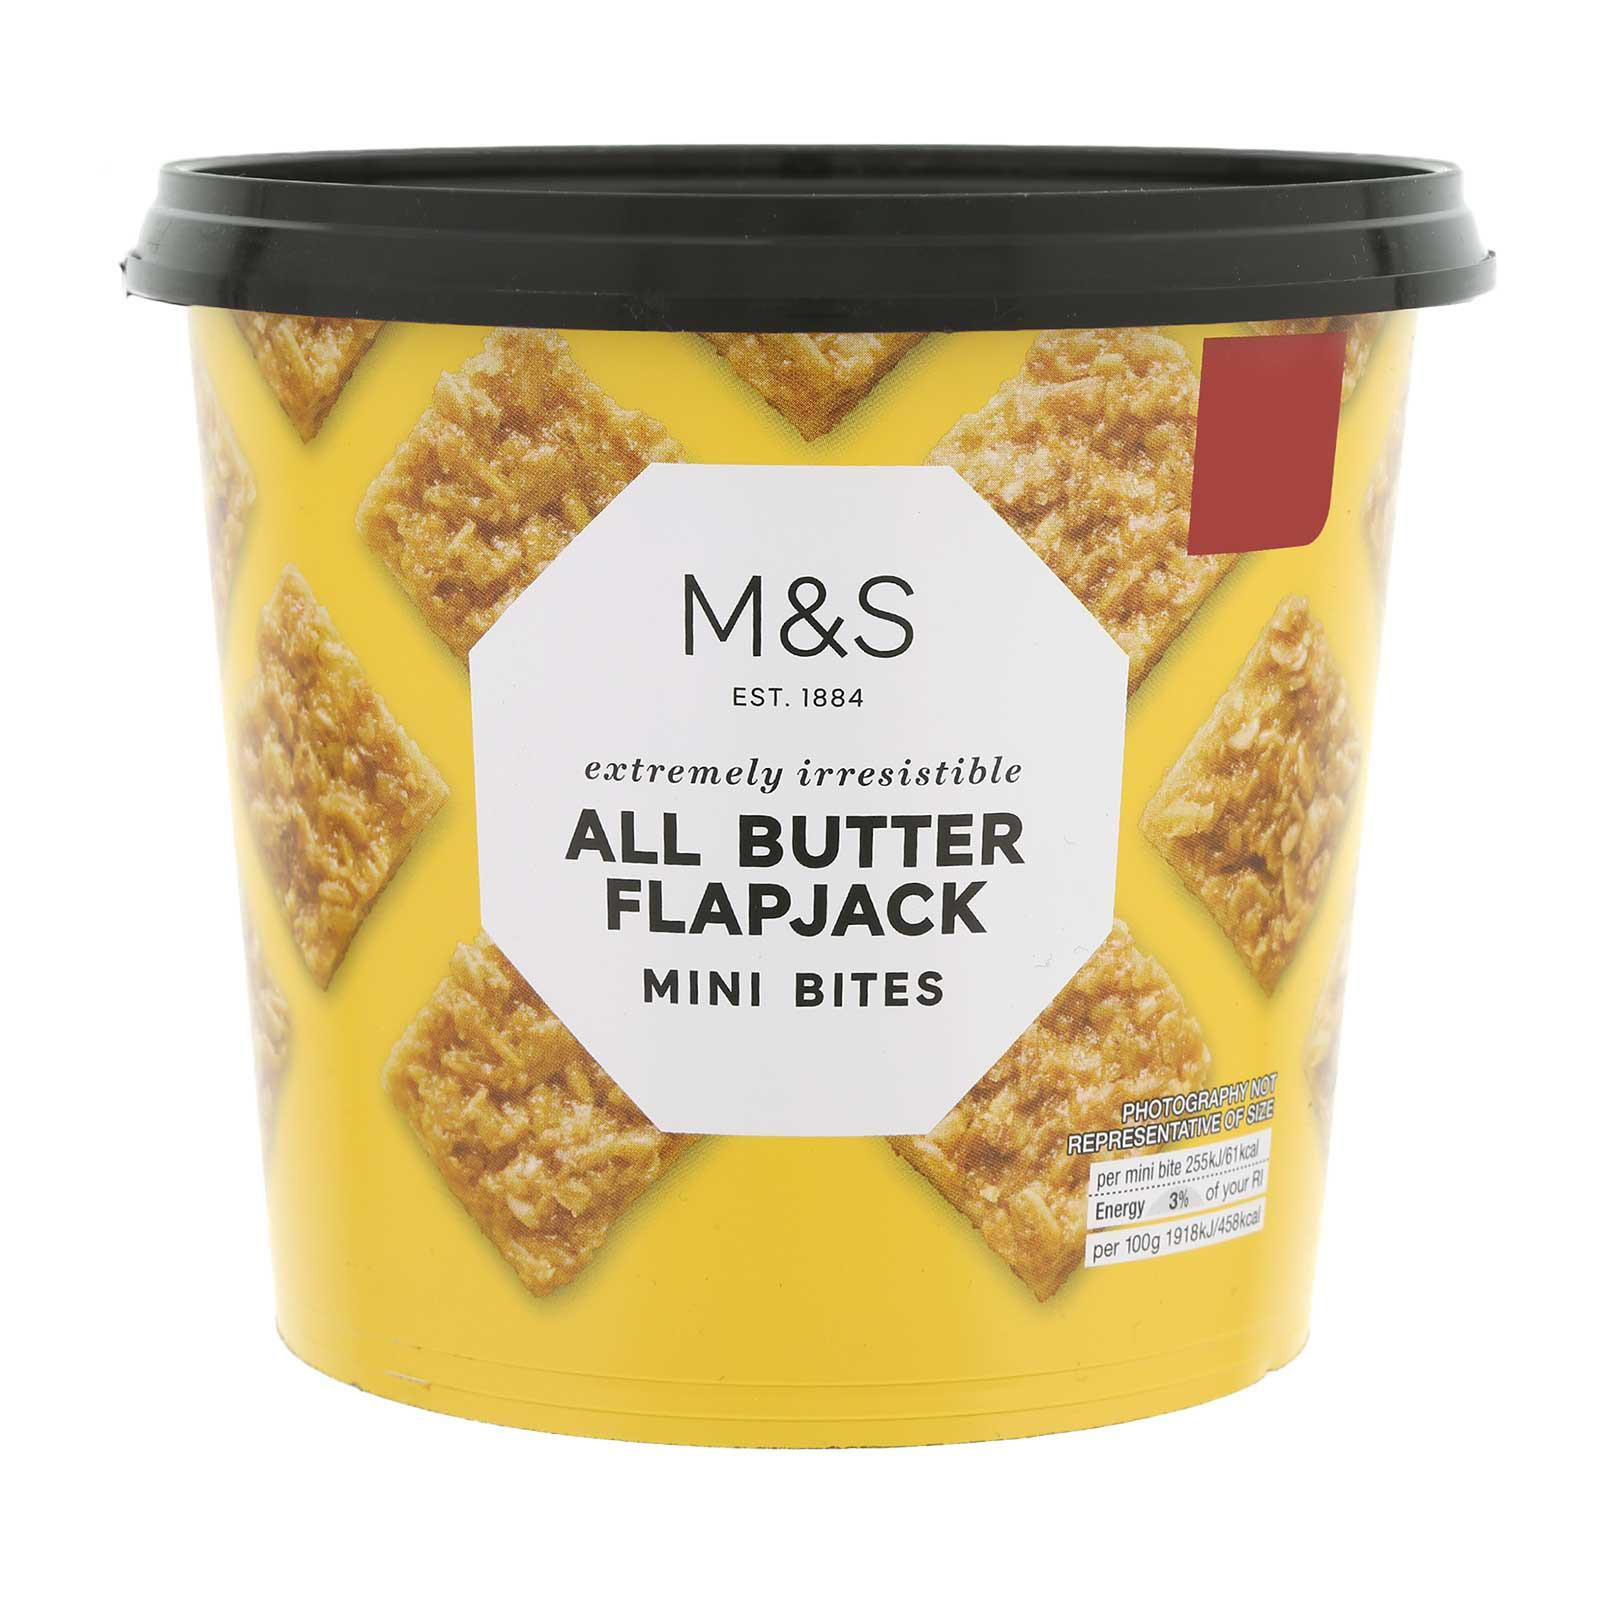 Marks & Spencer All Butter Flapjack Minibites